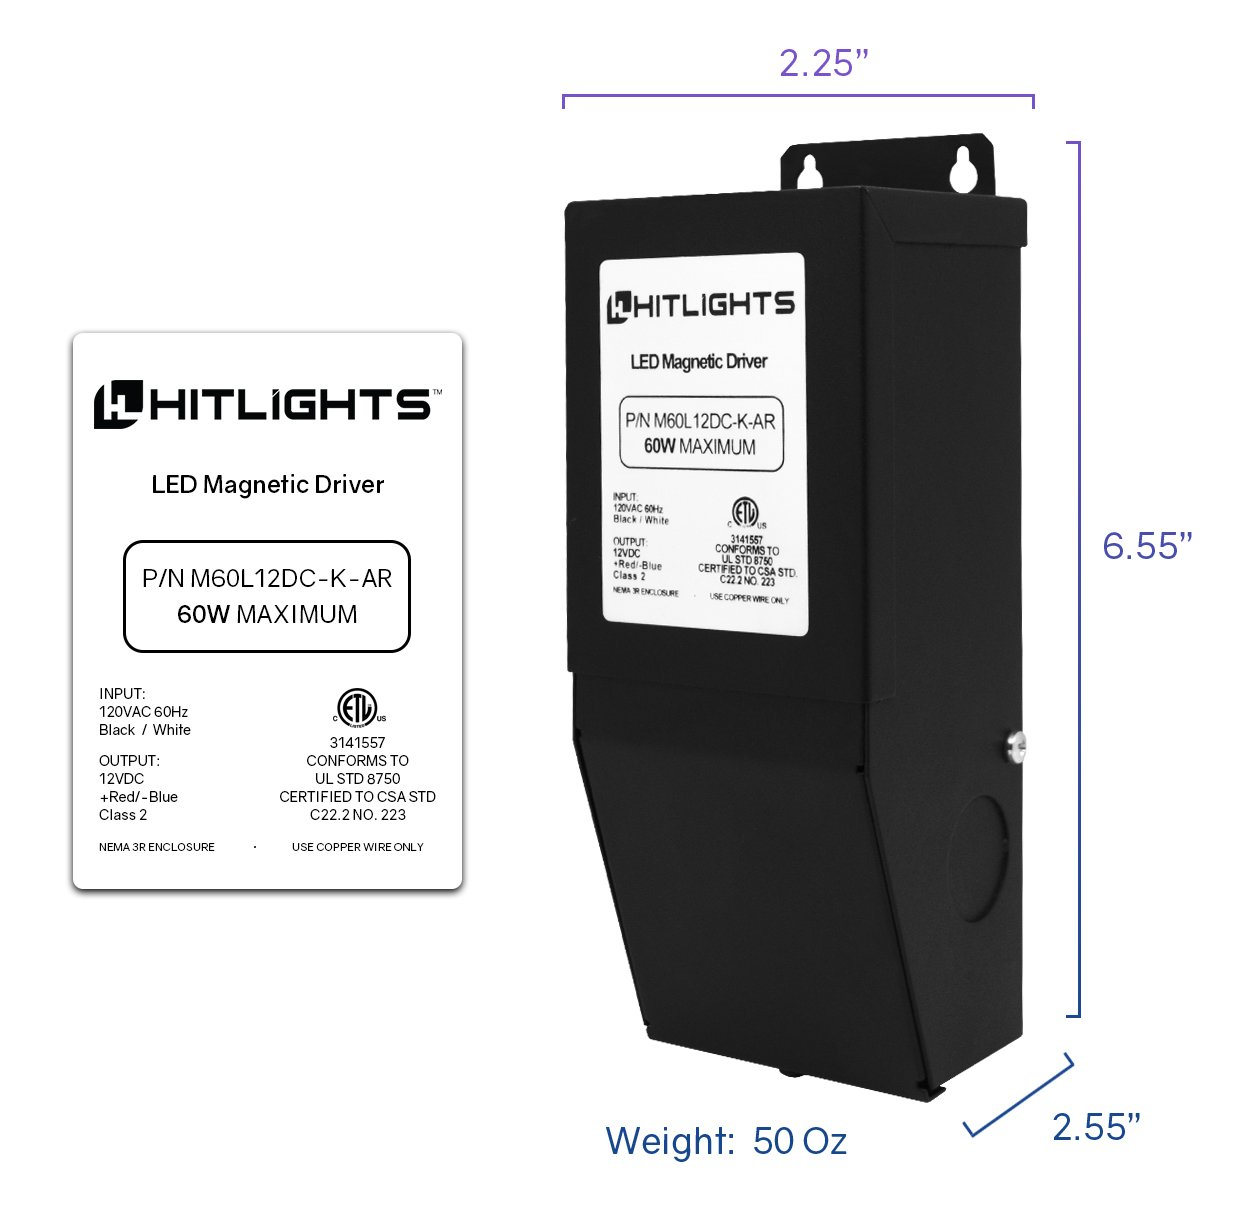 HitLights 60 Watt Dimmable Driver, Magnetic, for LED Light Strips - 110V AC-12V DC Transformer. Made in the USA. Compatible with Lutron and Leviton by HitLights (Image #2)